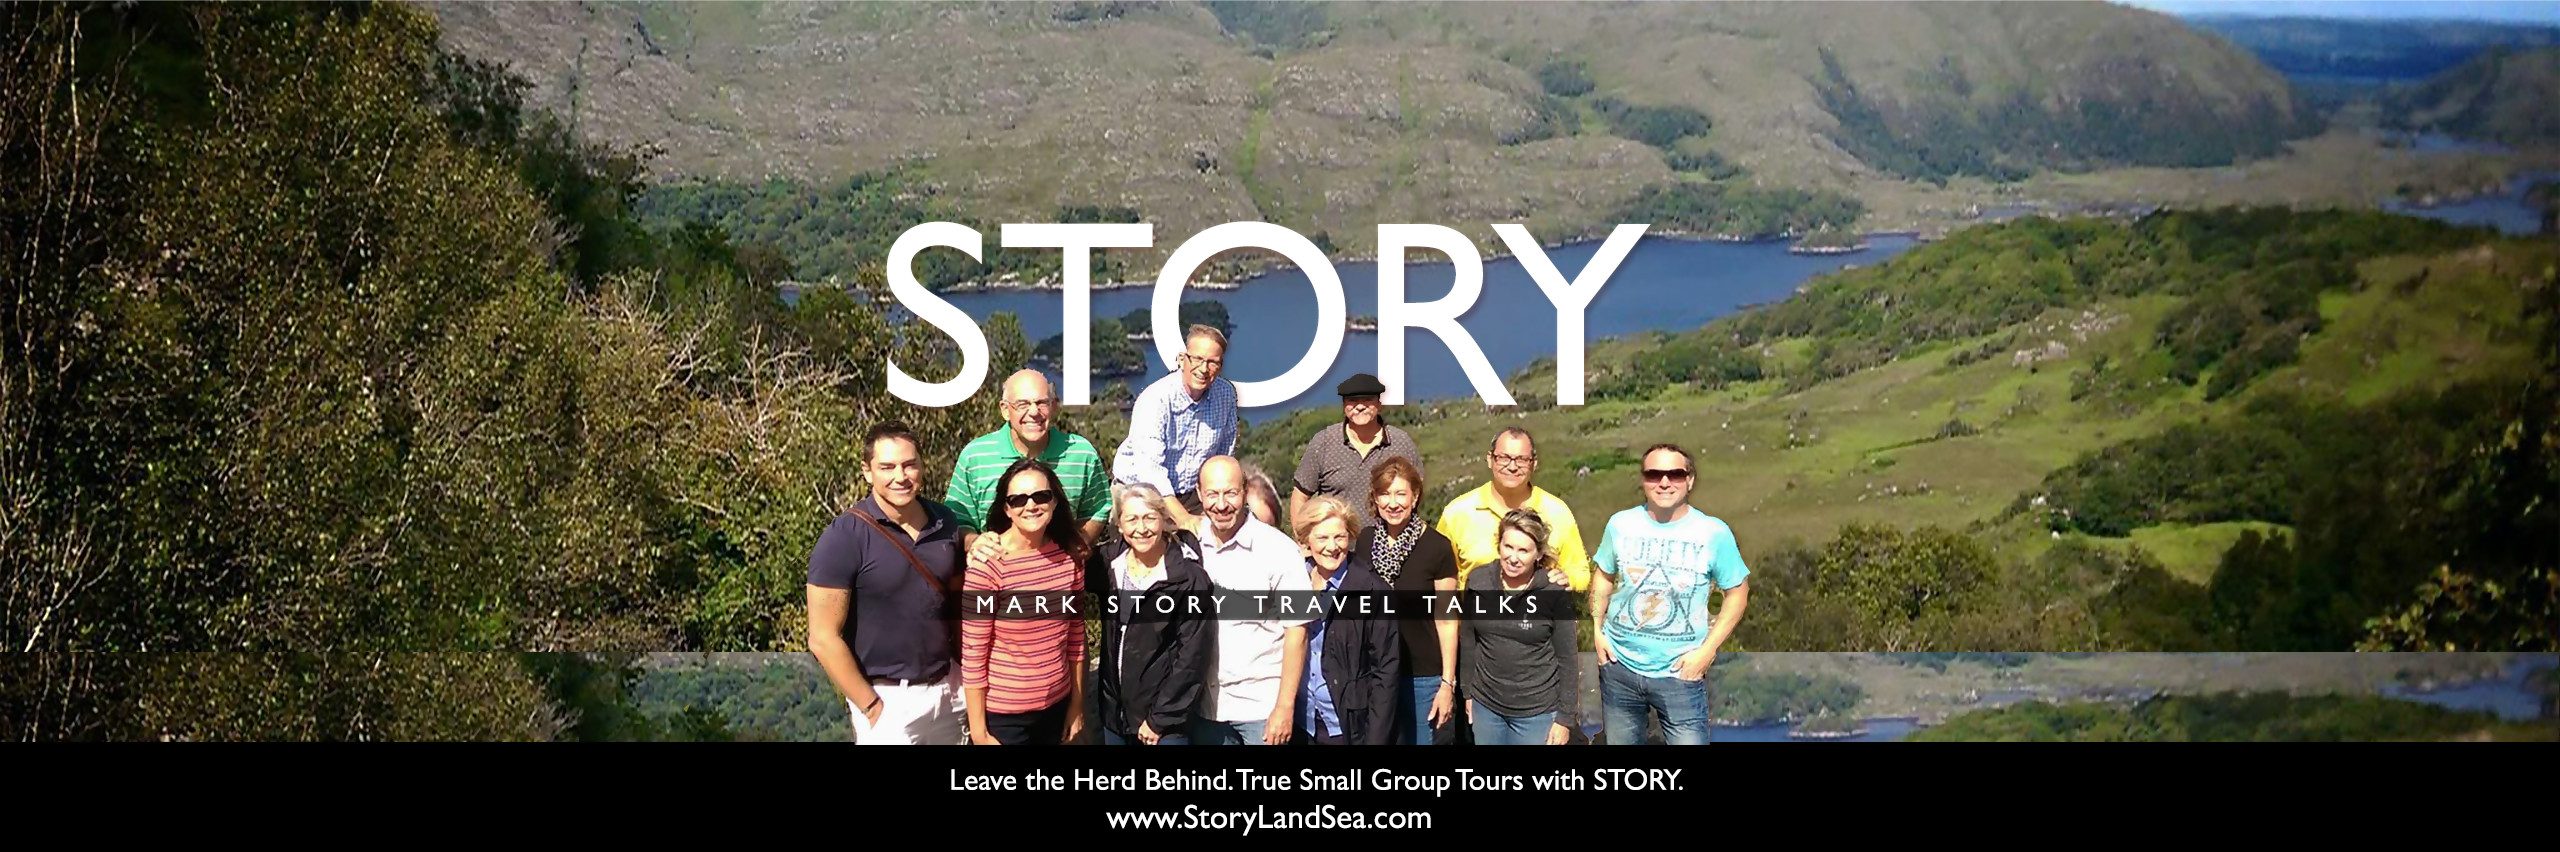 MARK STORY TRAVEL TALKS